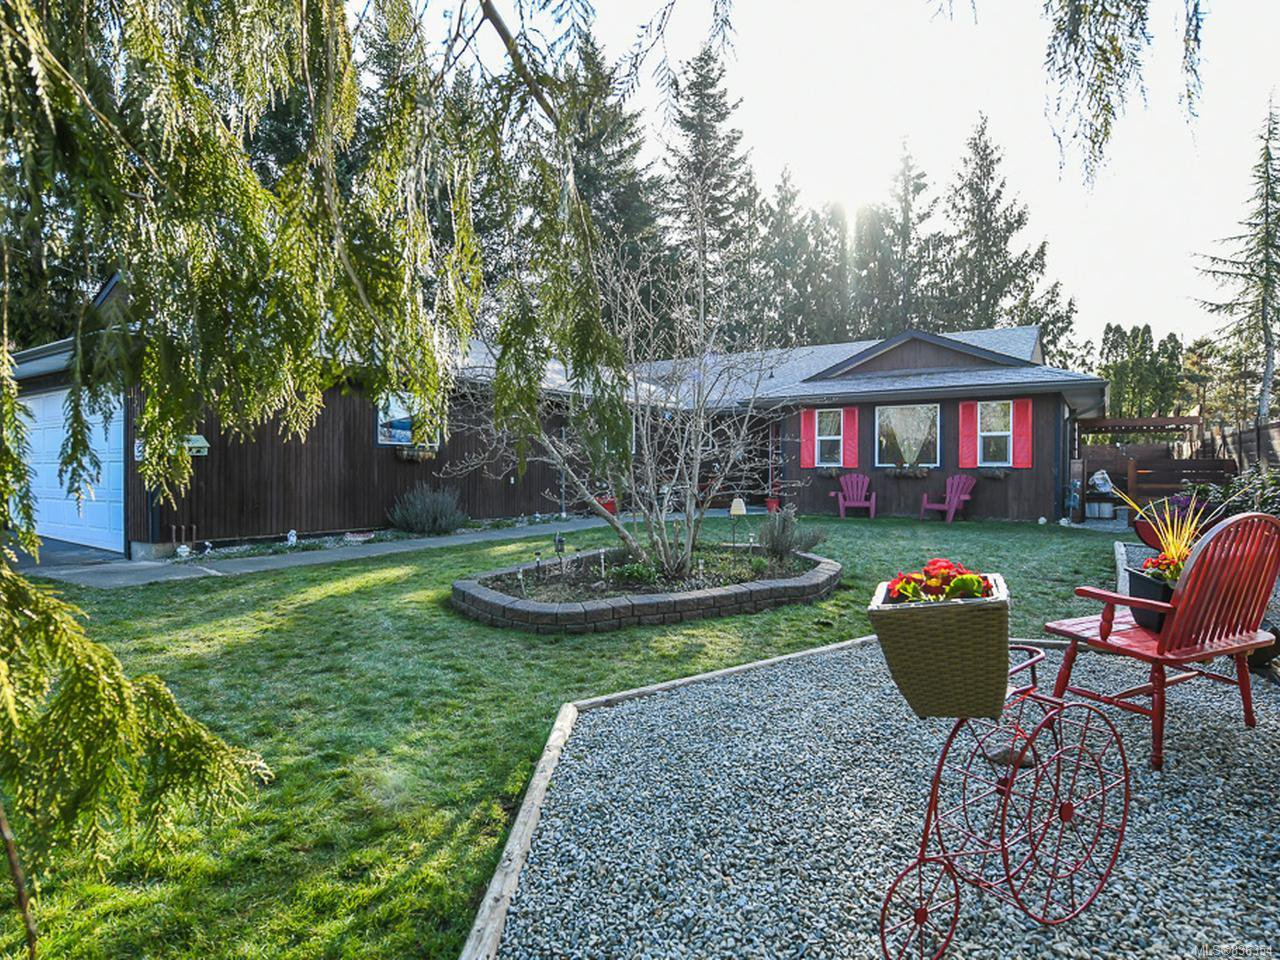 Main Photo: 1315 E 10th St in COURTENAY: CV Courtenay East House for sale (Comox Valley)  : MLS®# 836354